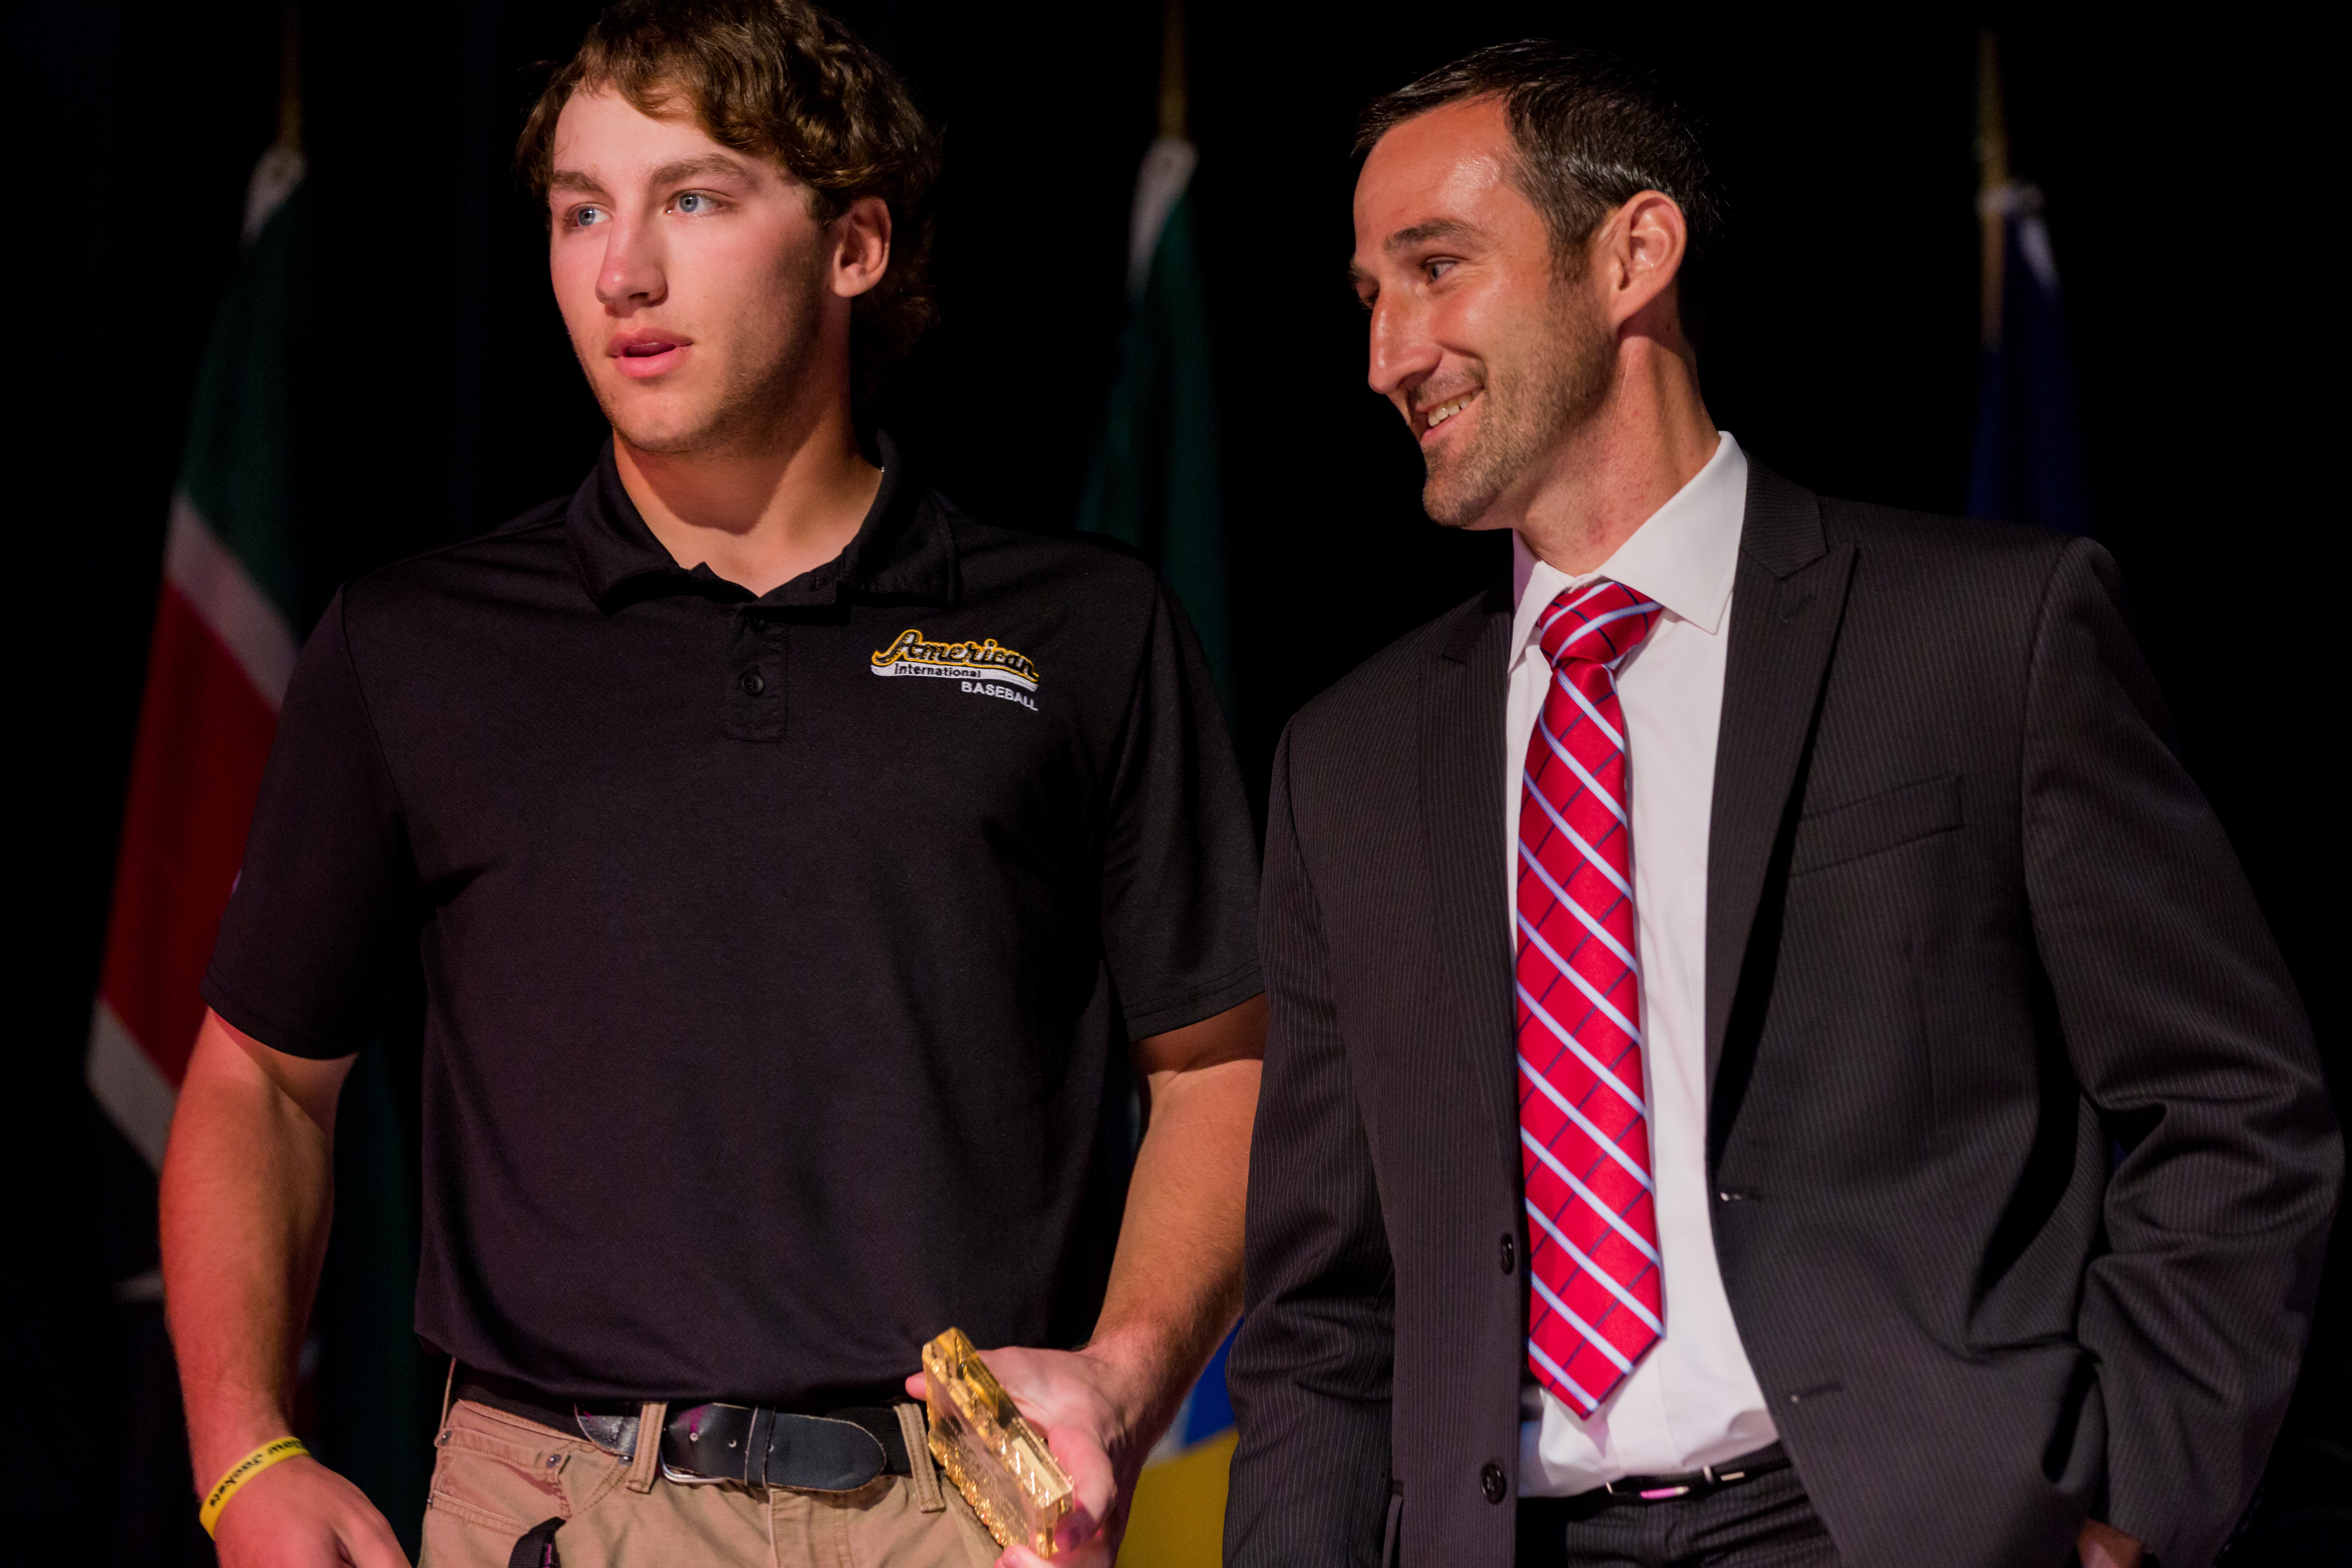 Matt krause first year male student athlete of the year